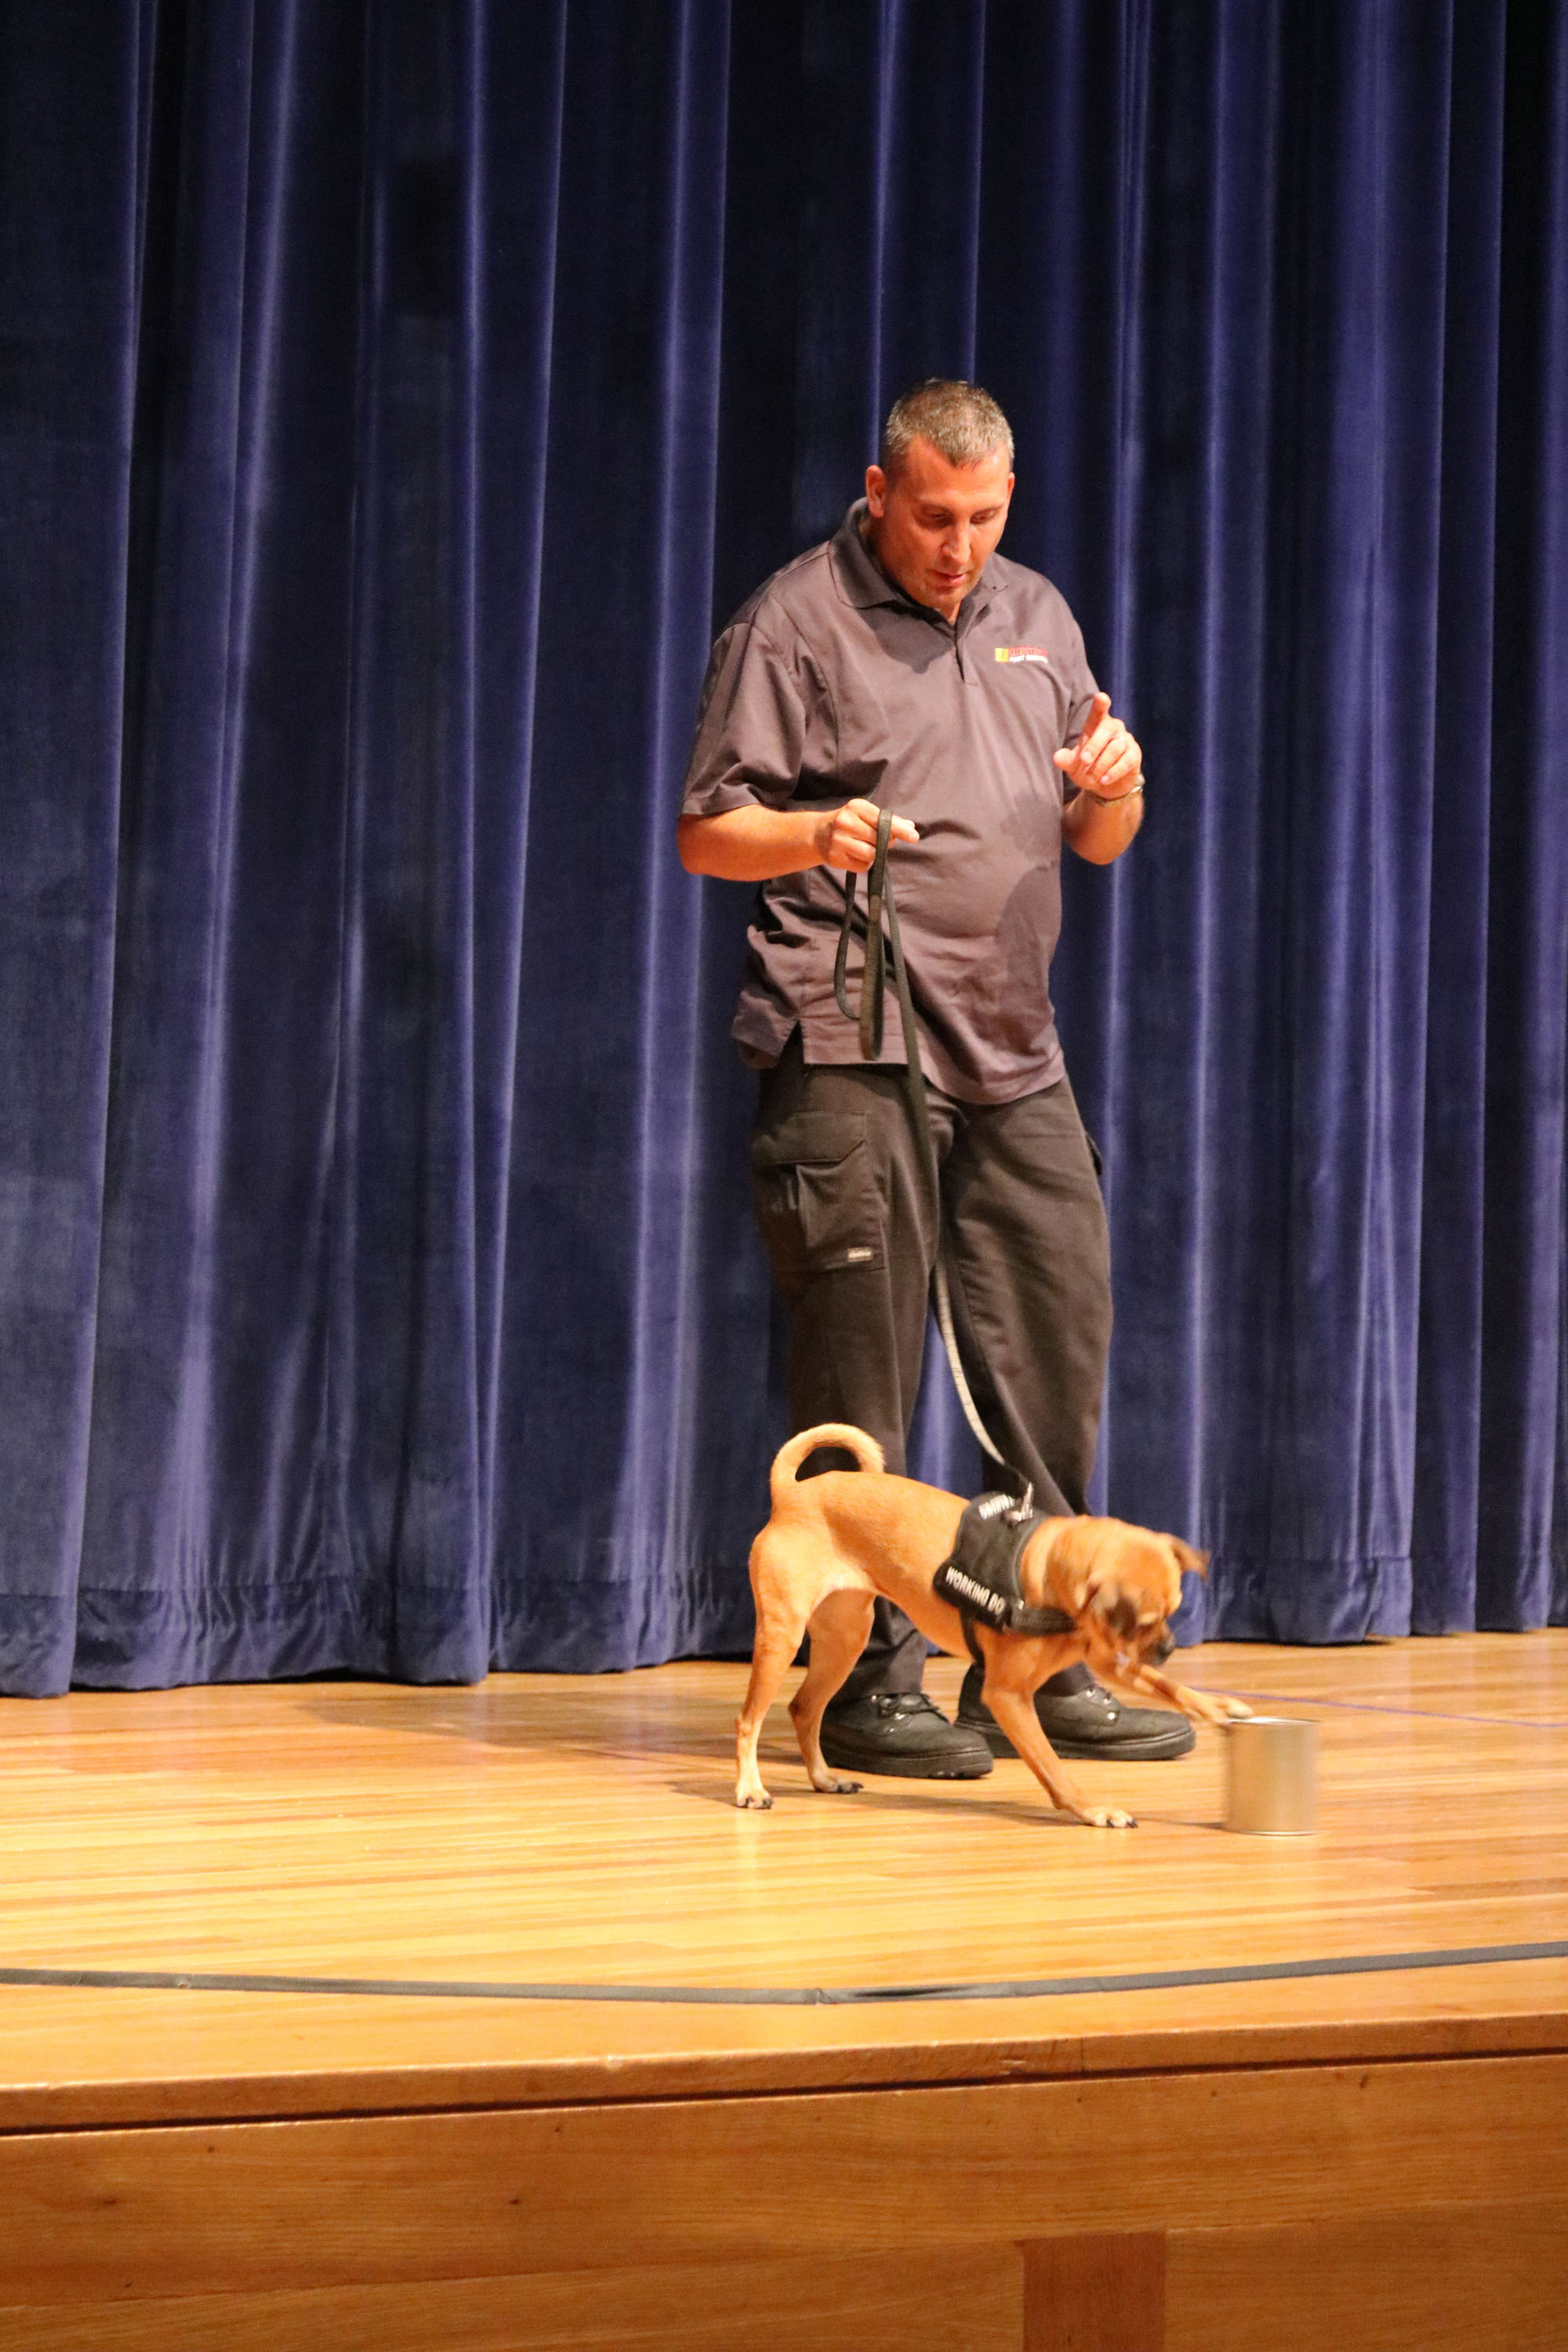 Bed bug sniffing dog demo with Western Pest. Man with small brown dog